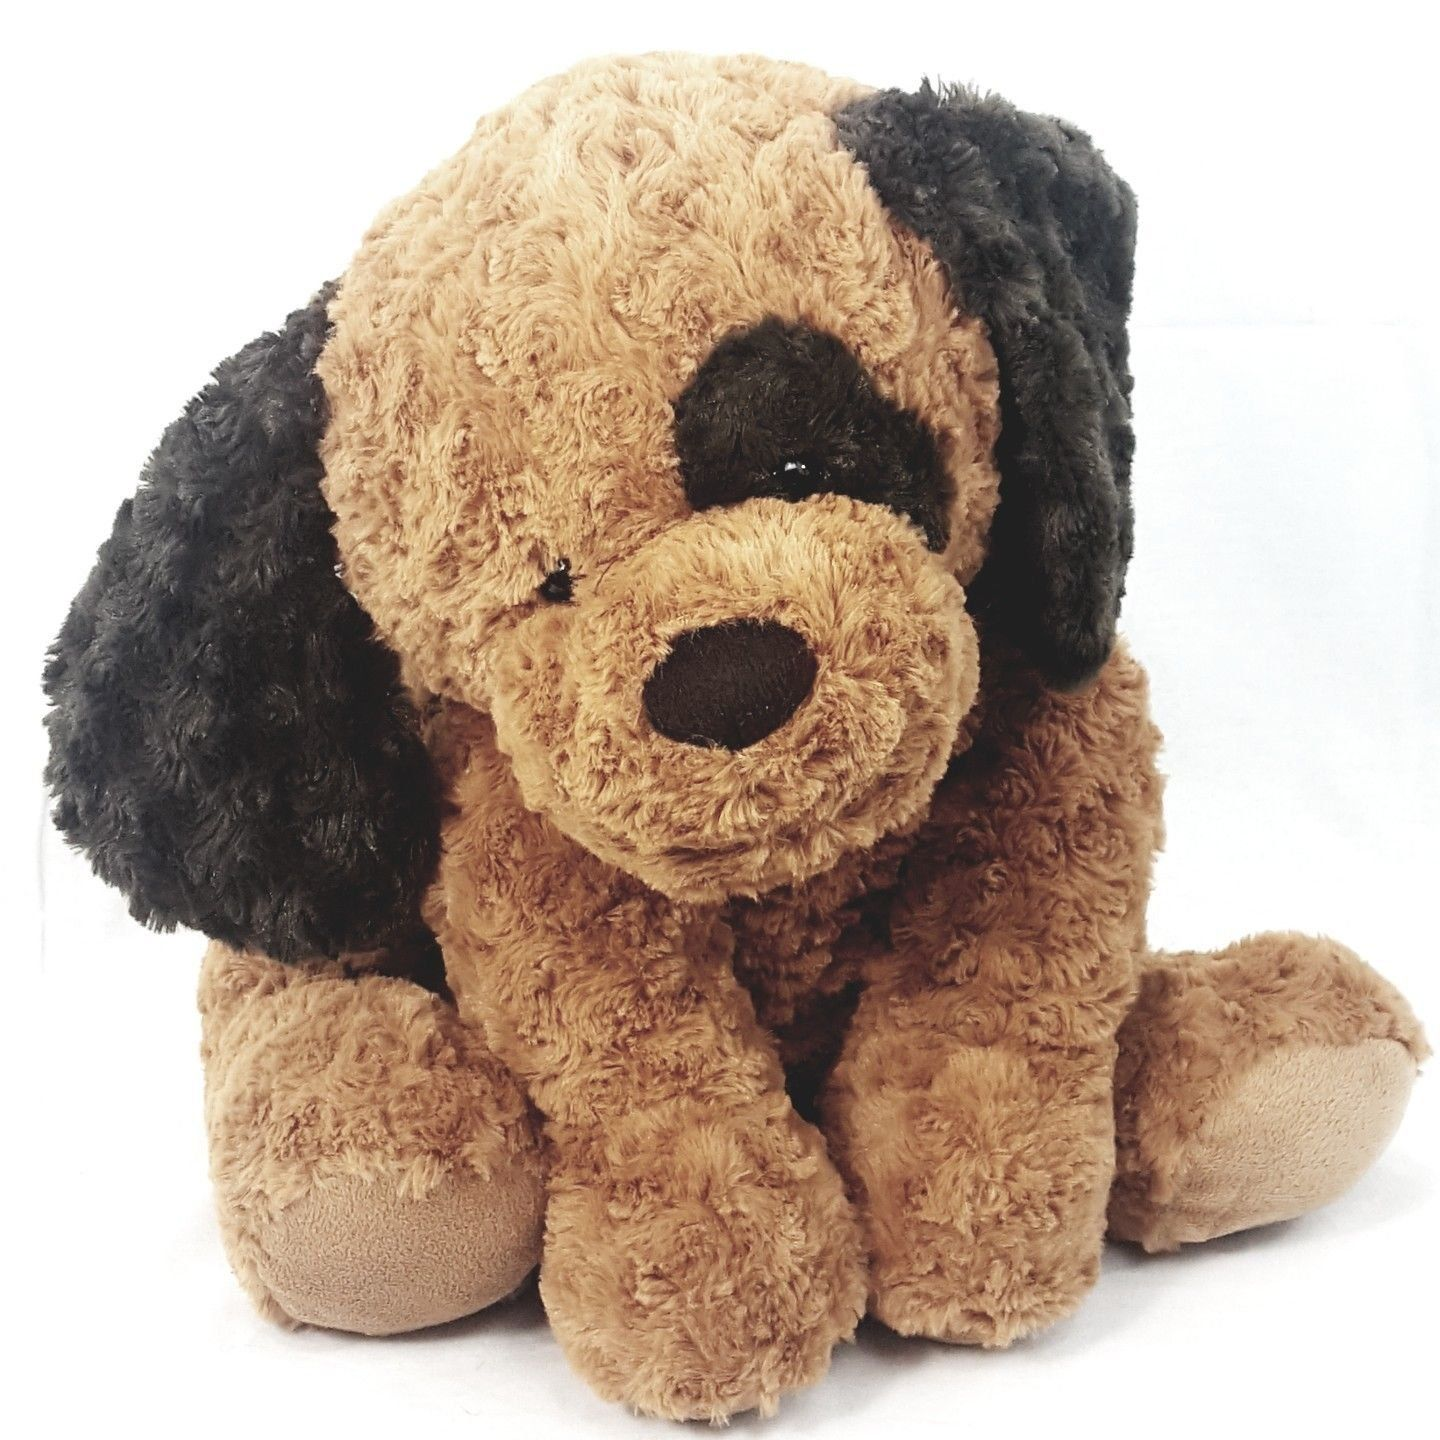 Puppy Toys R Us Large Dog Plush See This Great Item This Is An Affiliate Link Christmasillustration Toy Puppies Teddy Bear Stuffed Animal Pet Toys [ 1440 x 1440 Pixel ]